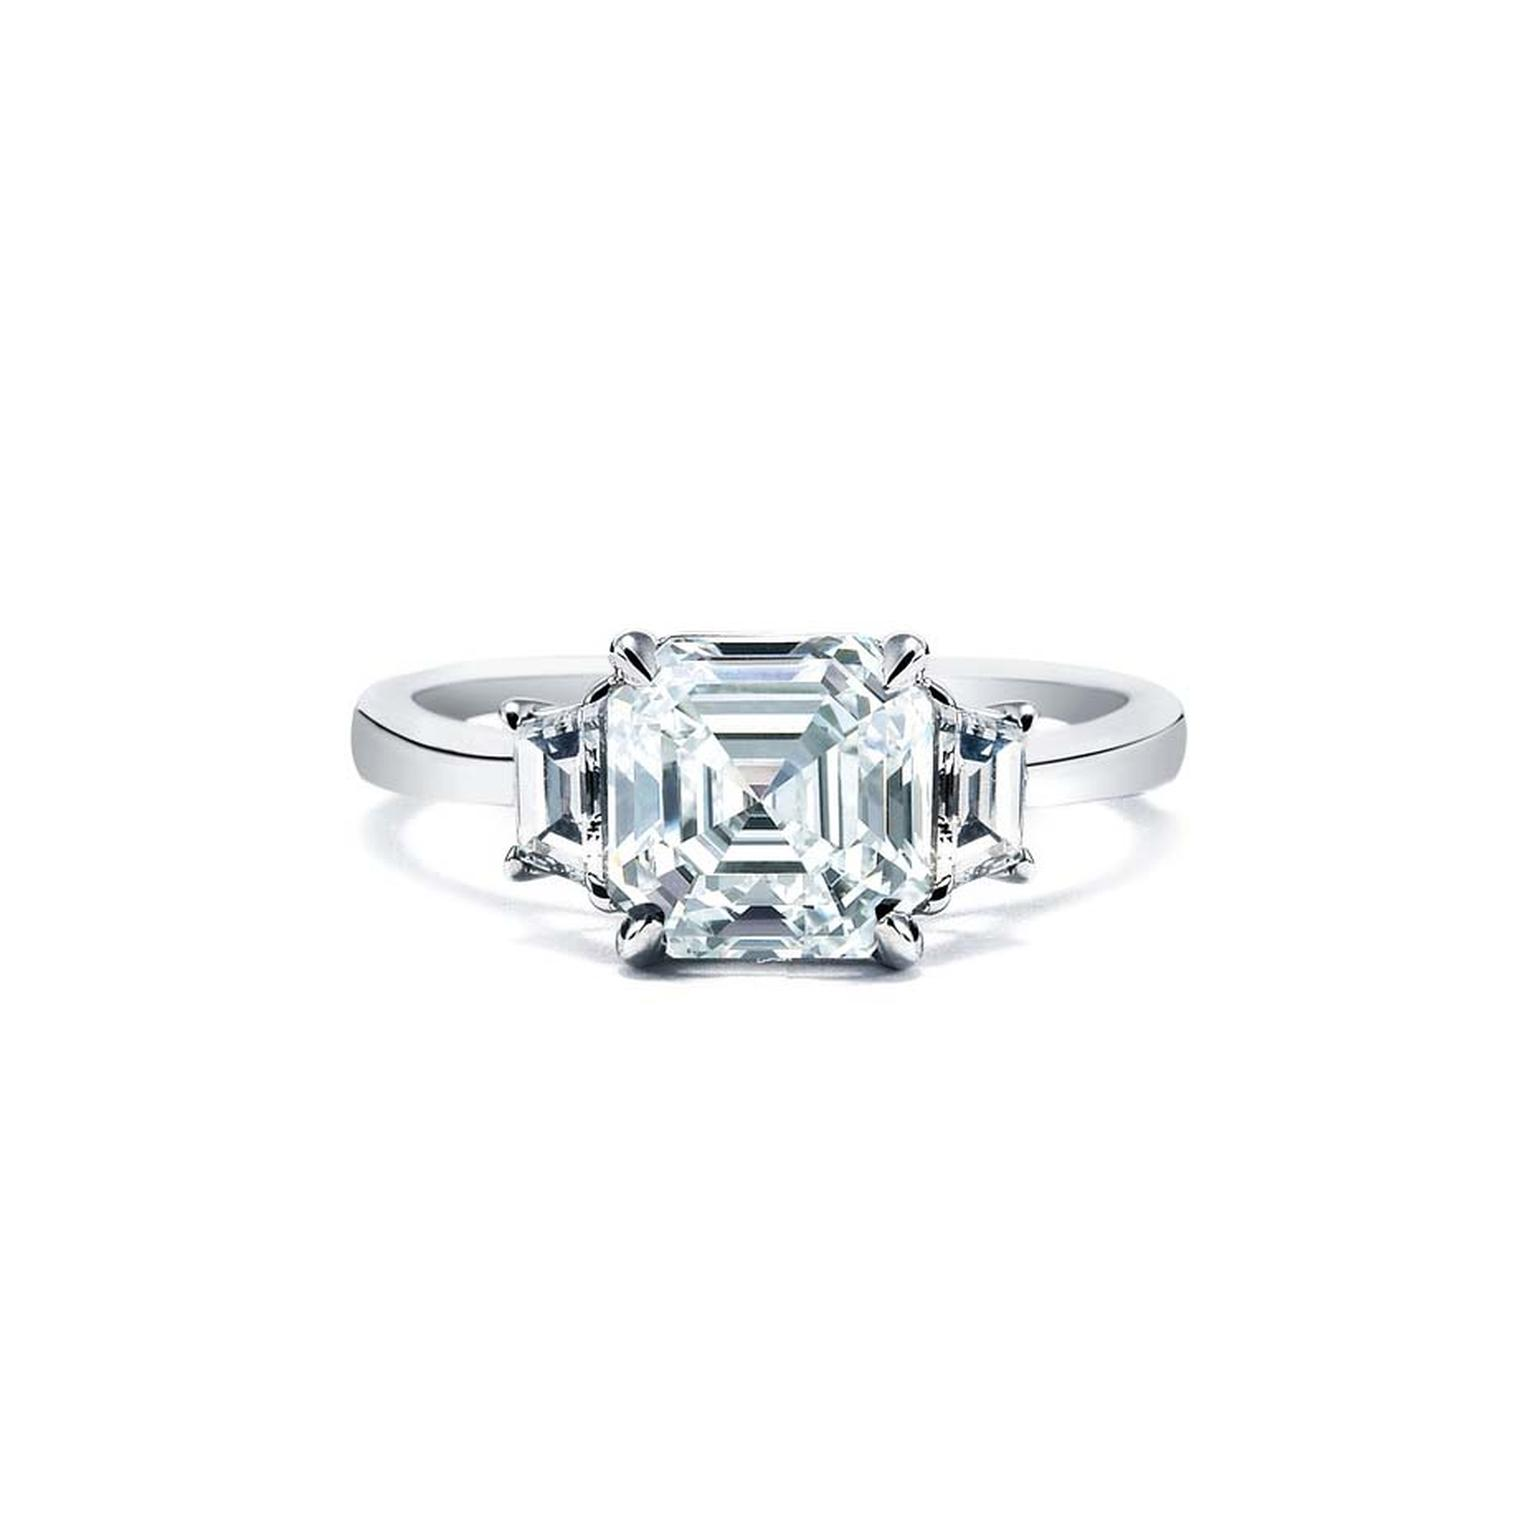 Royal Asscher cut diamond engagement ring in white gold, with accompanying shoulder set diamonds. Also available in platinum and yellow gold.